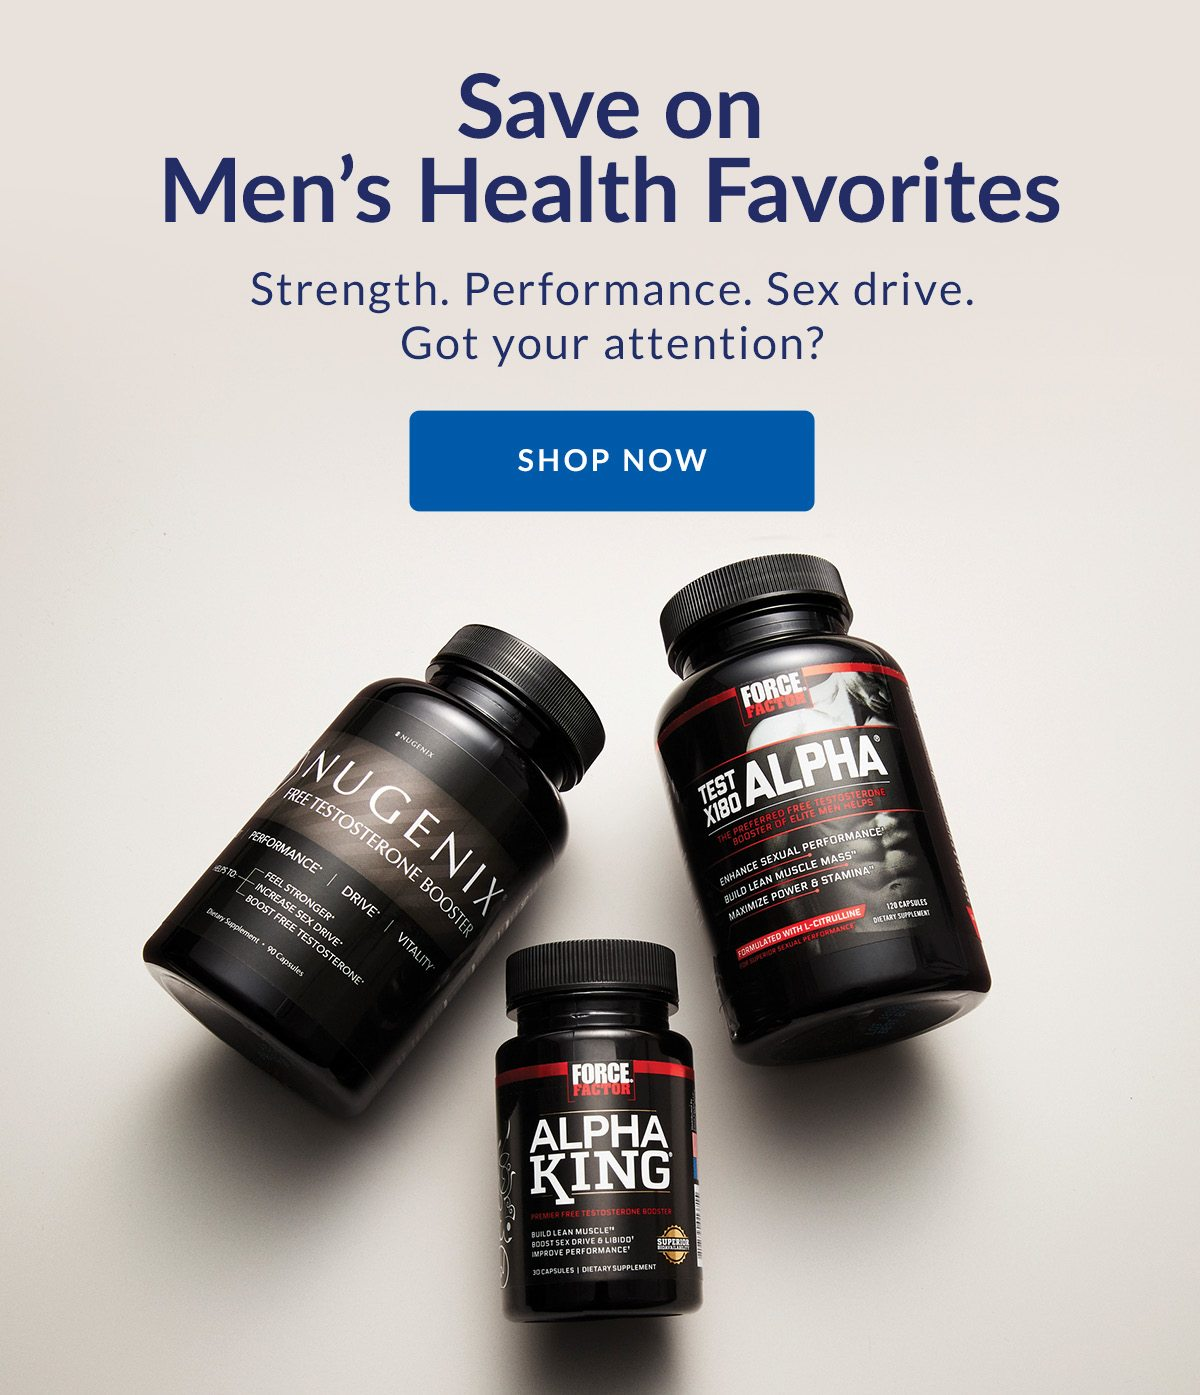 Save on Men's Health Favorites | Strength. Performance. Sex drive. Got your attention? | SHOP NOW